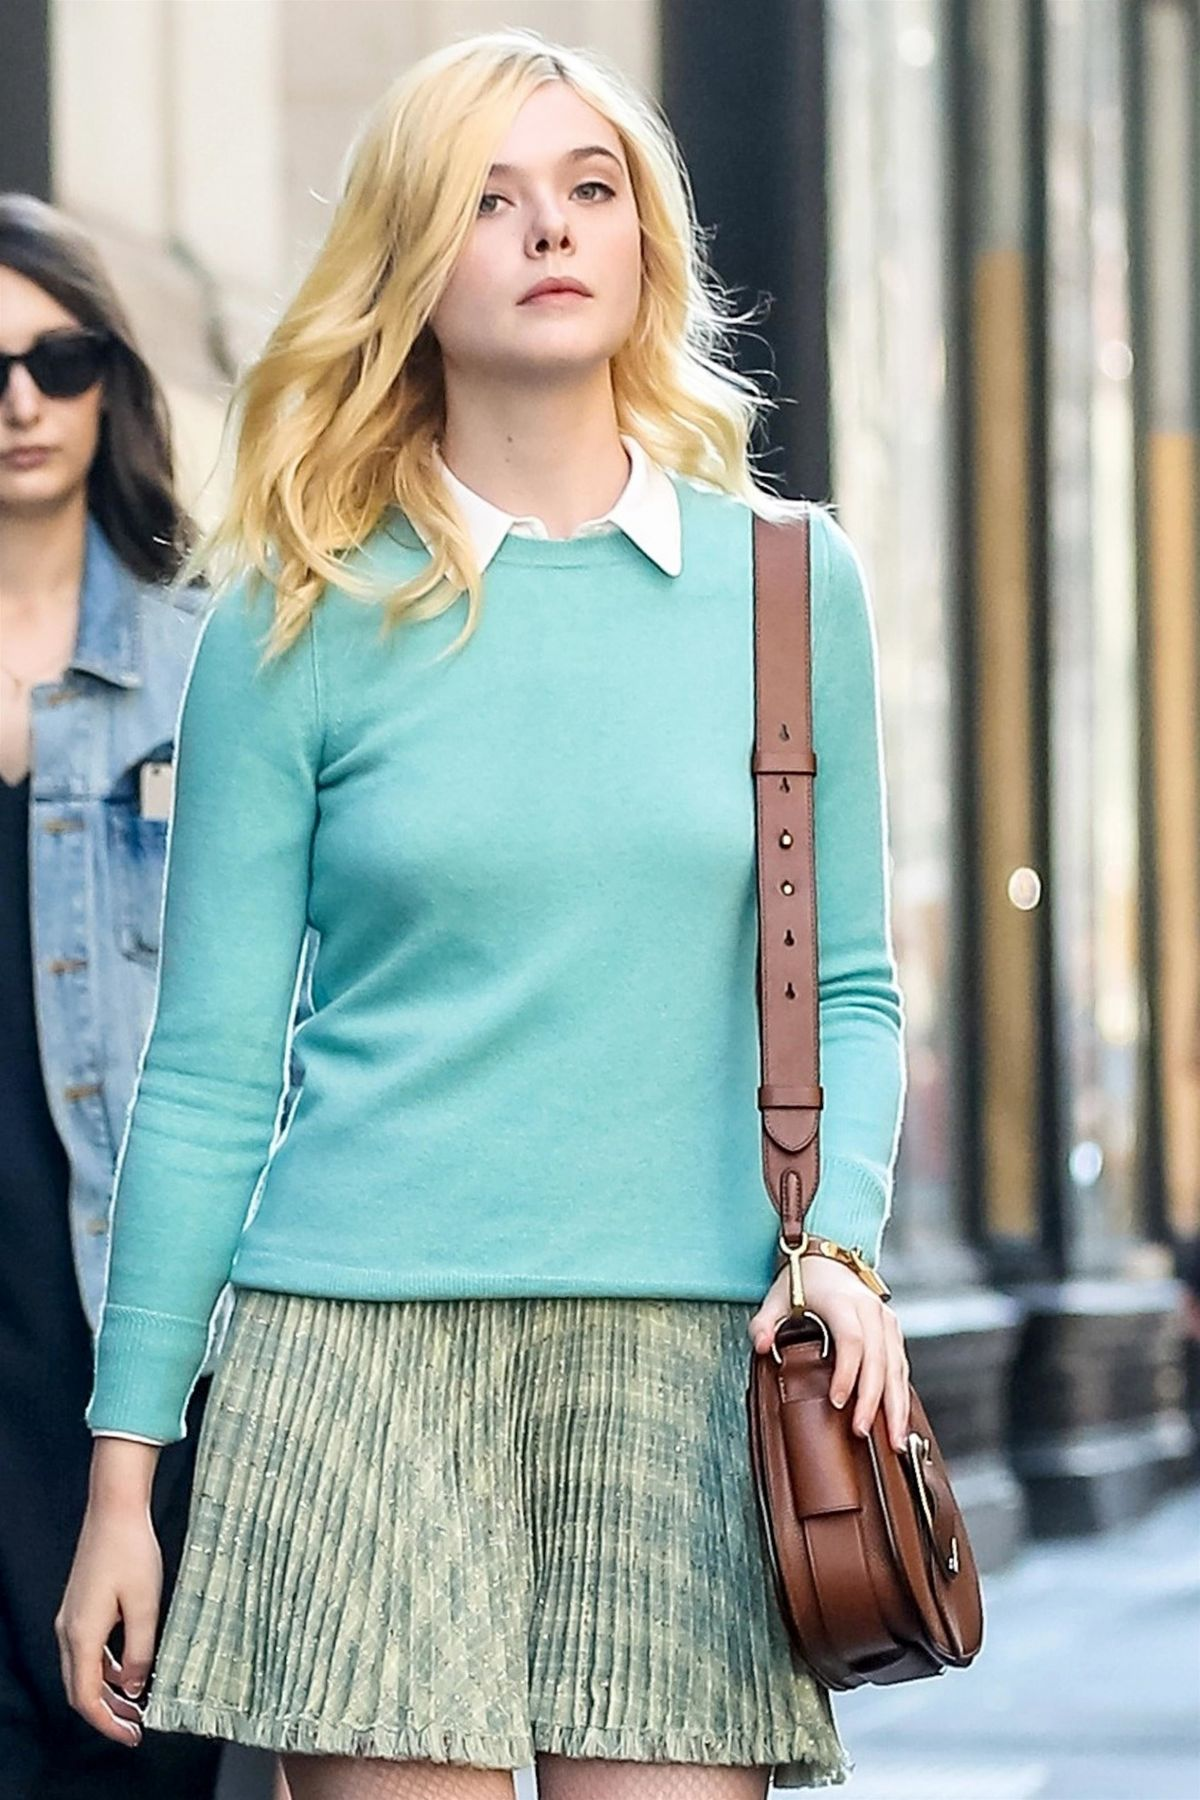 15 elle fanning - photo #21